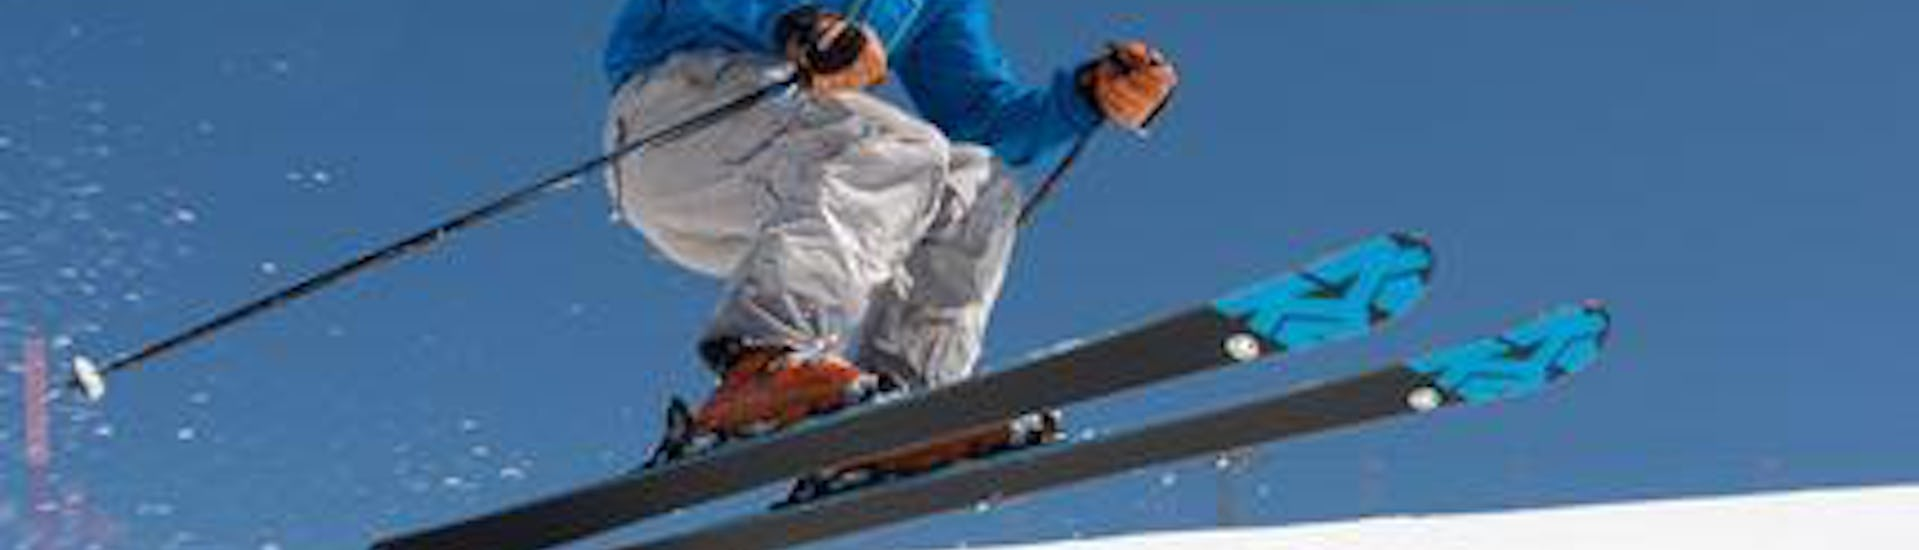 Ski Weekend: 2 nights + 5hrs Private Lessons - All Levels